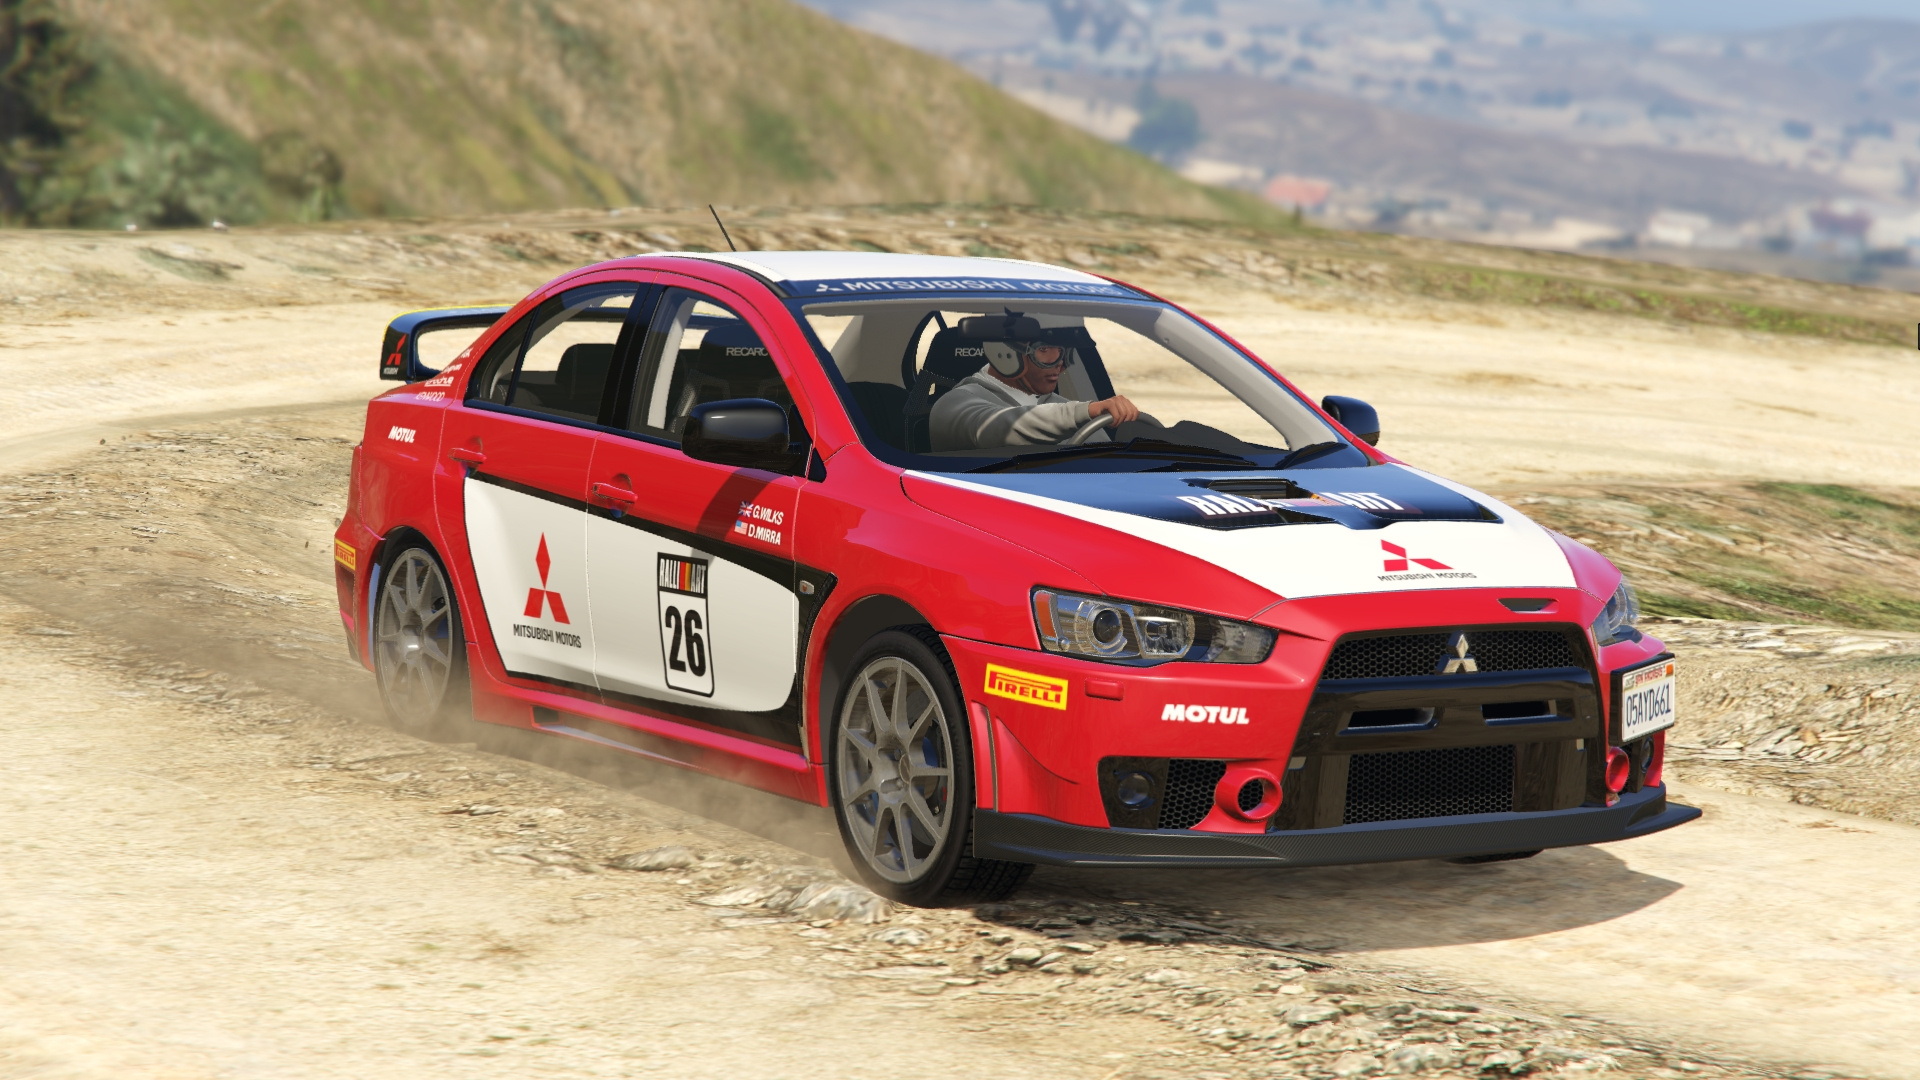 mitsubishi lancer evo x fq 400 rally livery gta5. Black Bedroom Furniture Sets. Home Design Ideas